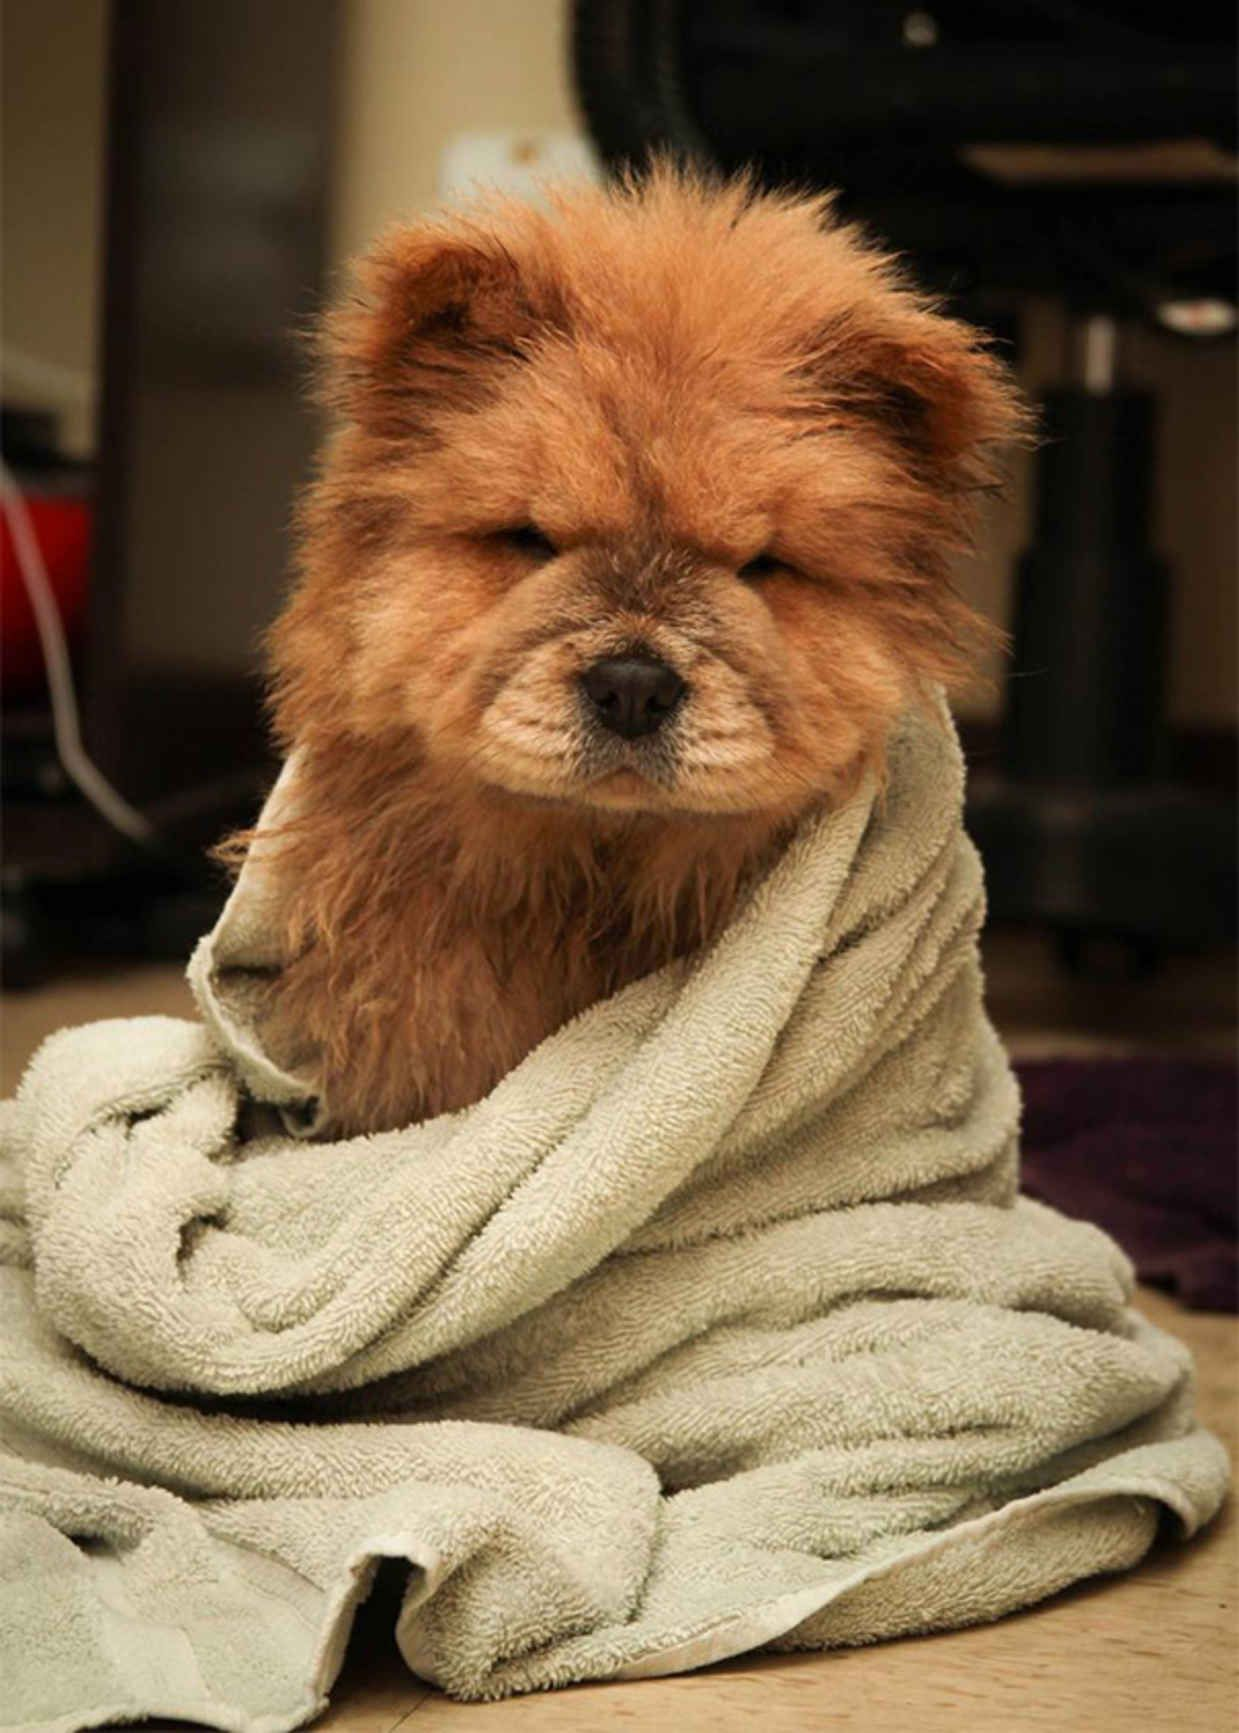 Adorable Dogs That Actually Look Like Tiny Teddy Bears Tiny - 28 adorable dogs that actually look like tiny teddy bears